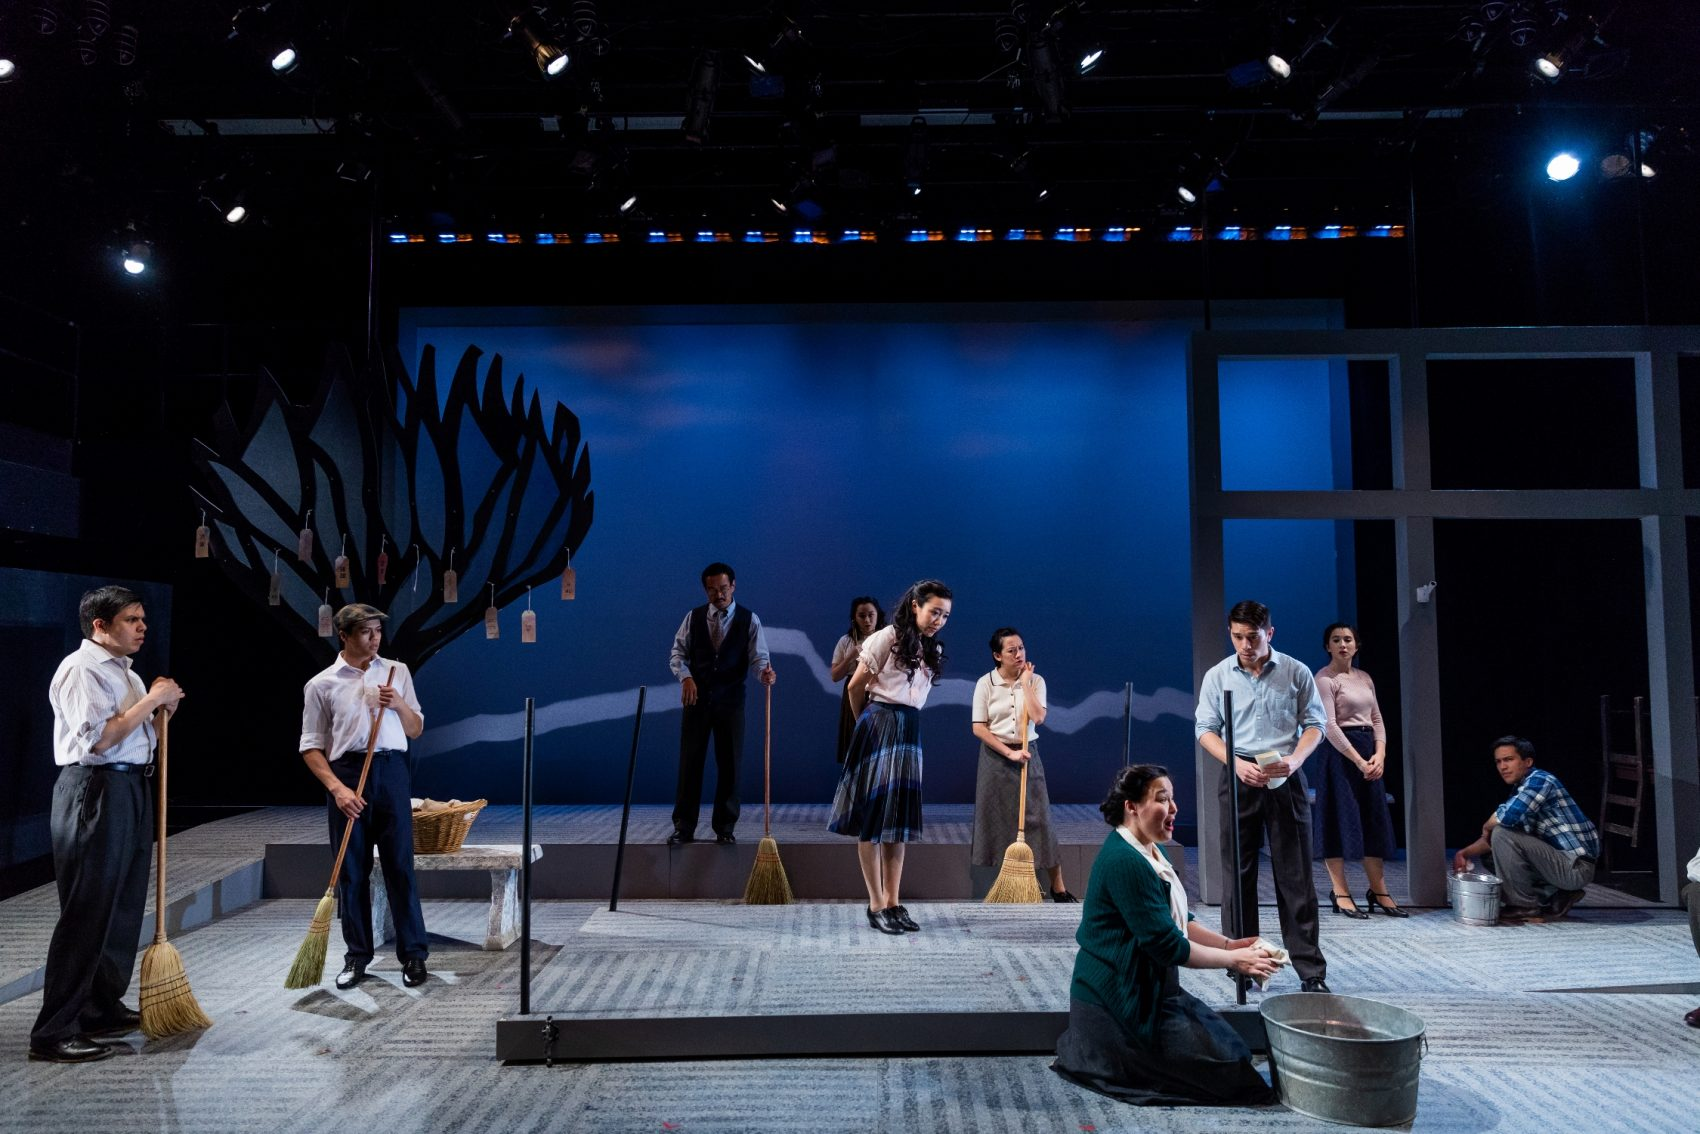 speakeasy stage company production - HD1700×1134